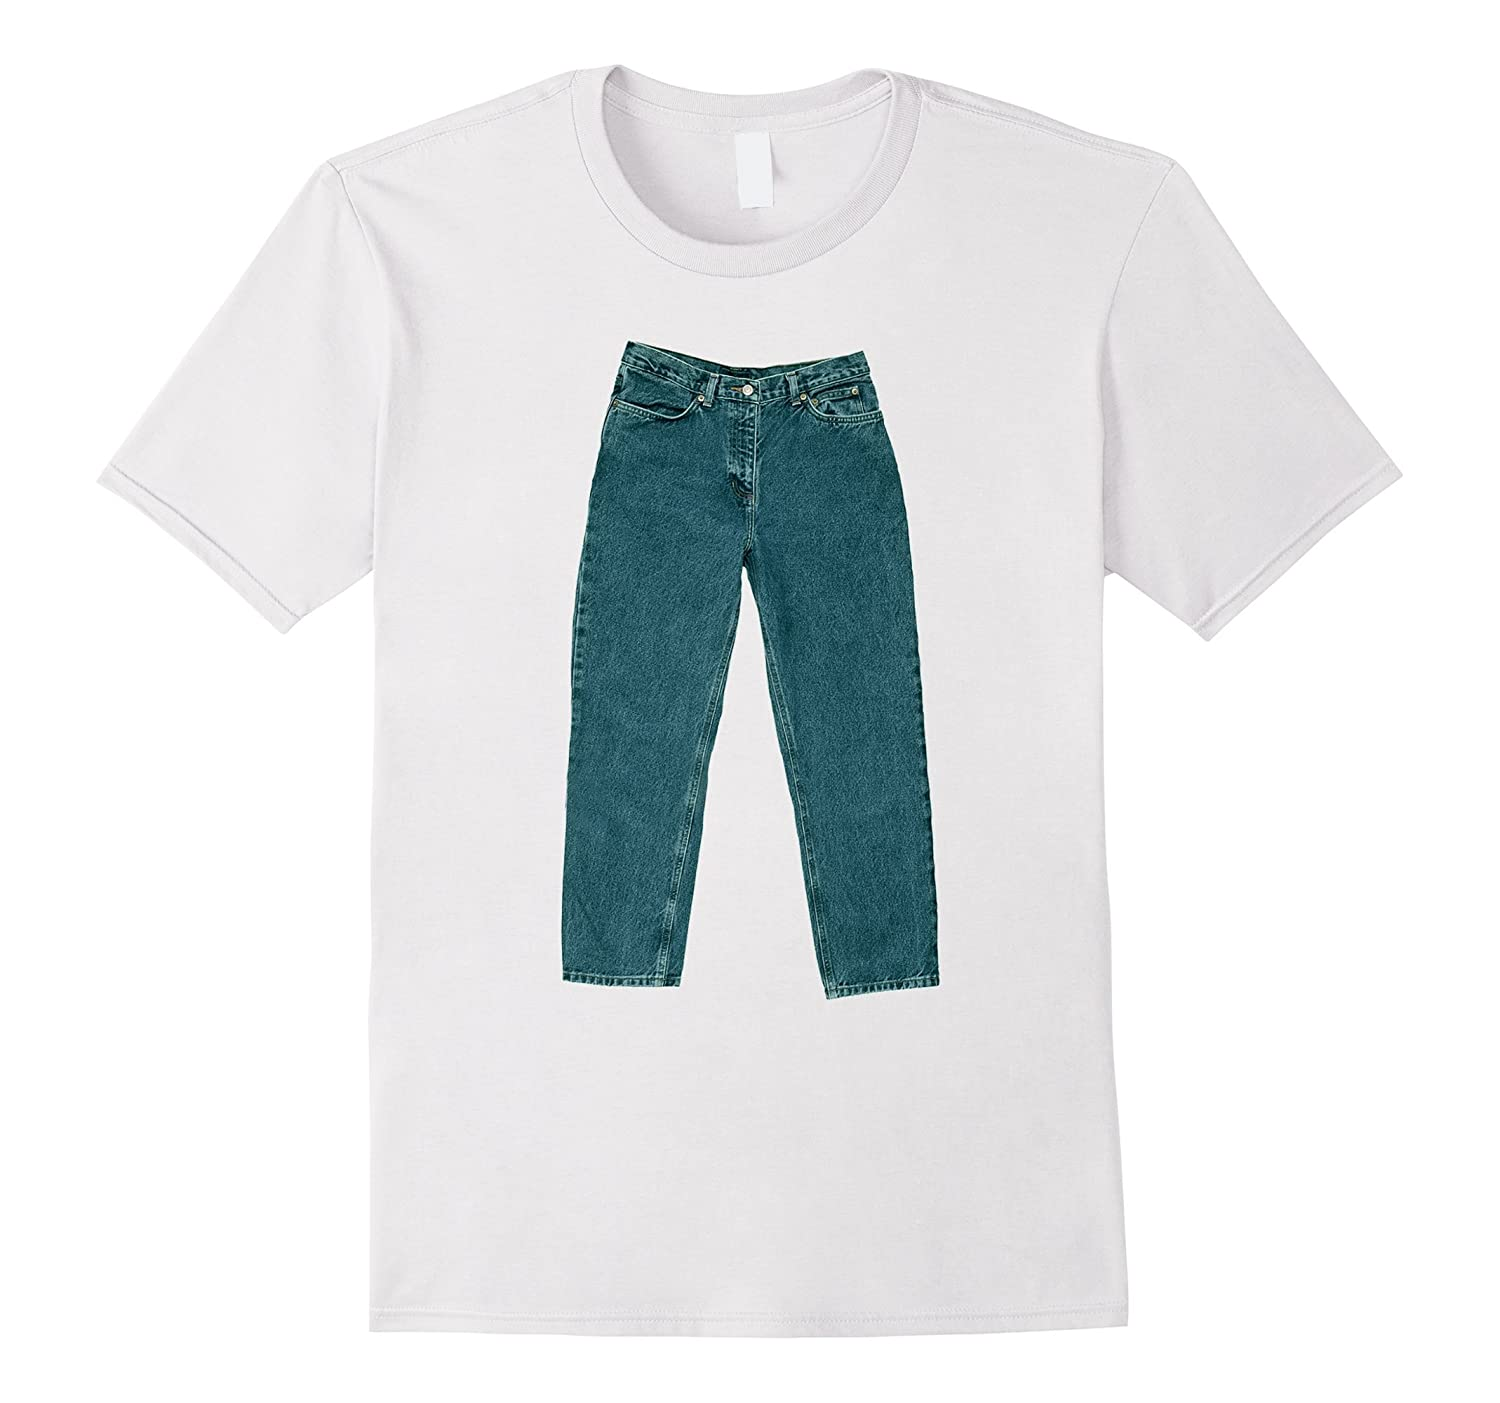 PANTS on a SHIRT - funny ironic t-shirt-TD